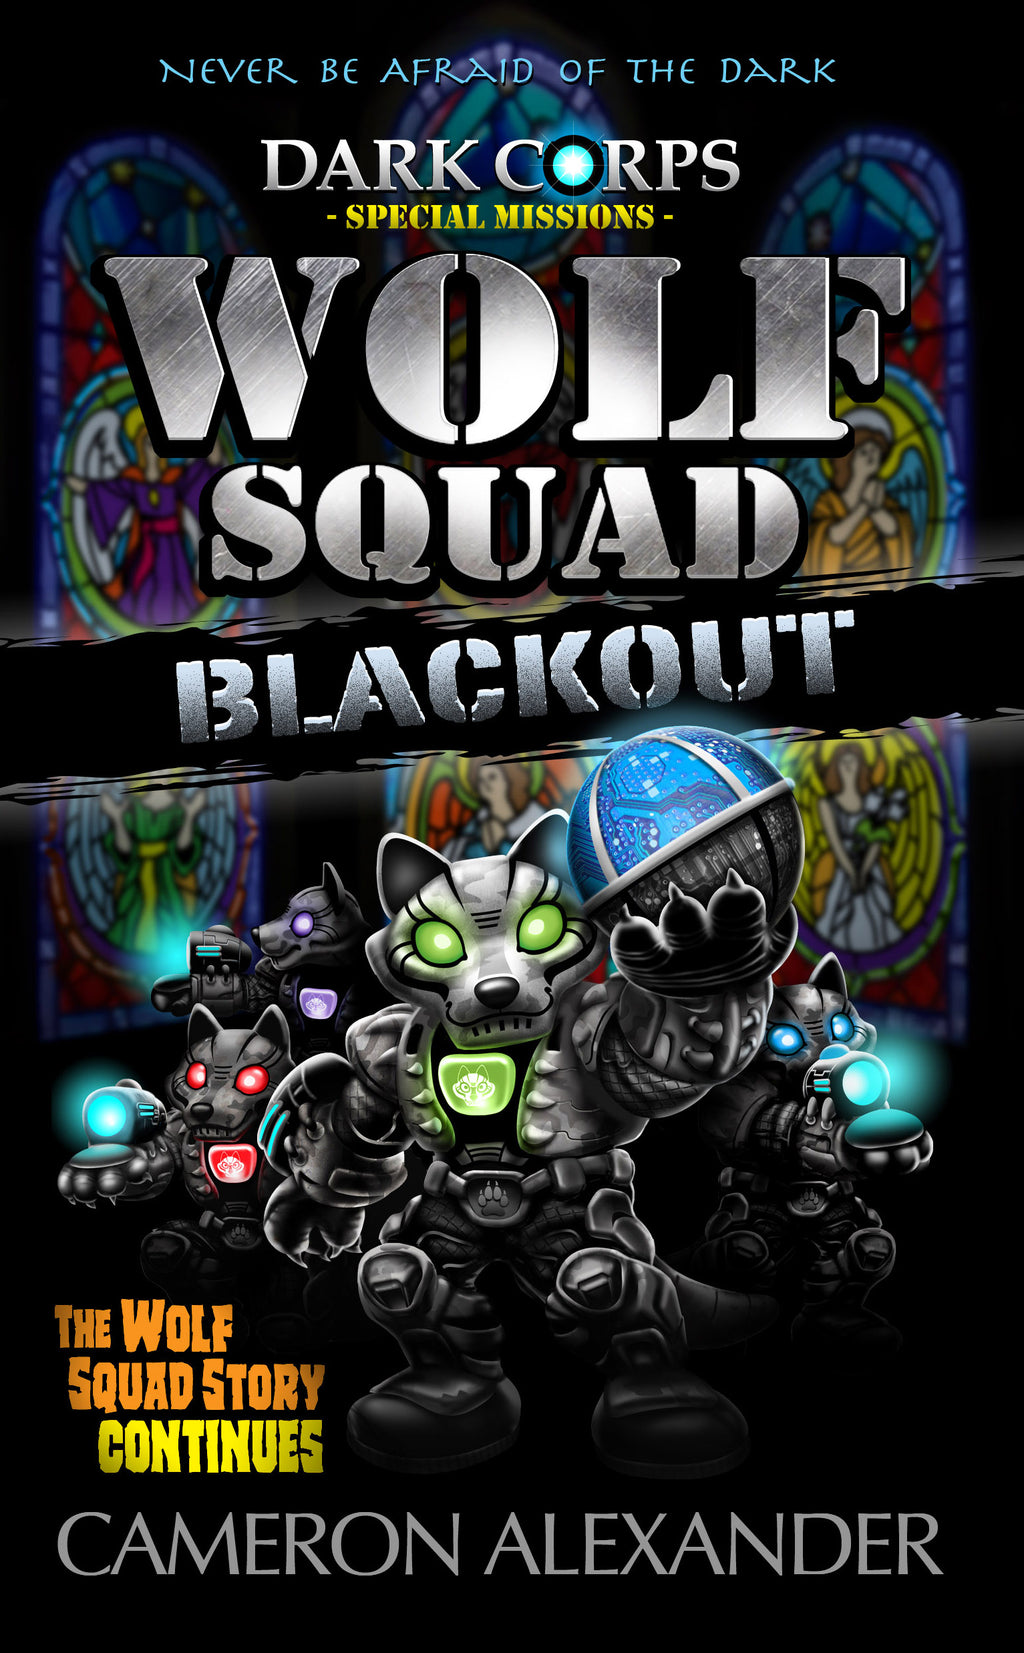 Wolf Squad:Blackout (Special Missions) - Dark Corps